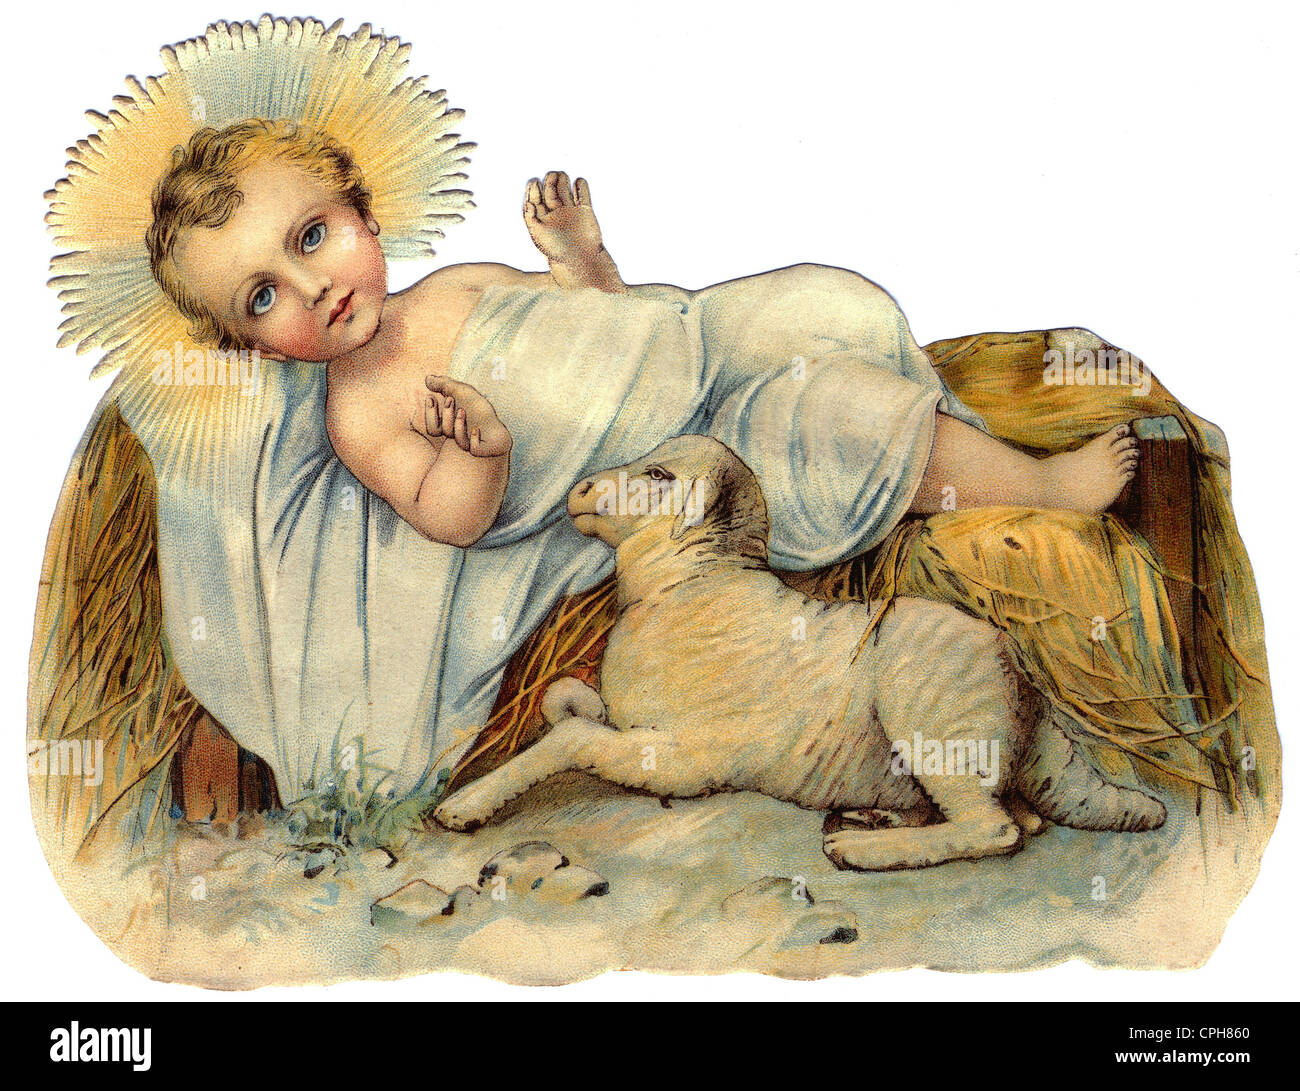 Christmas, the infant Jesus, the infant Jesus lying on straw, religious portrayal, Germany, circa 1890, Additional - Stock Image